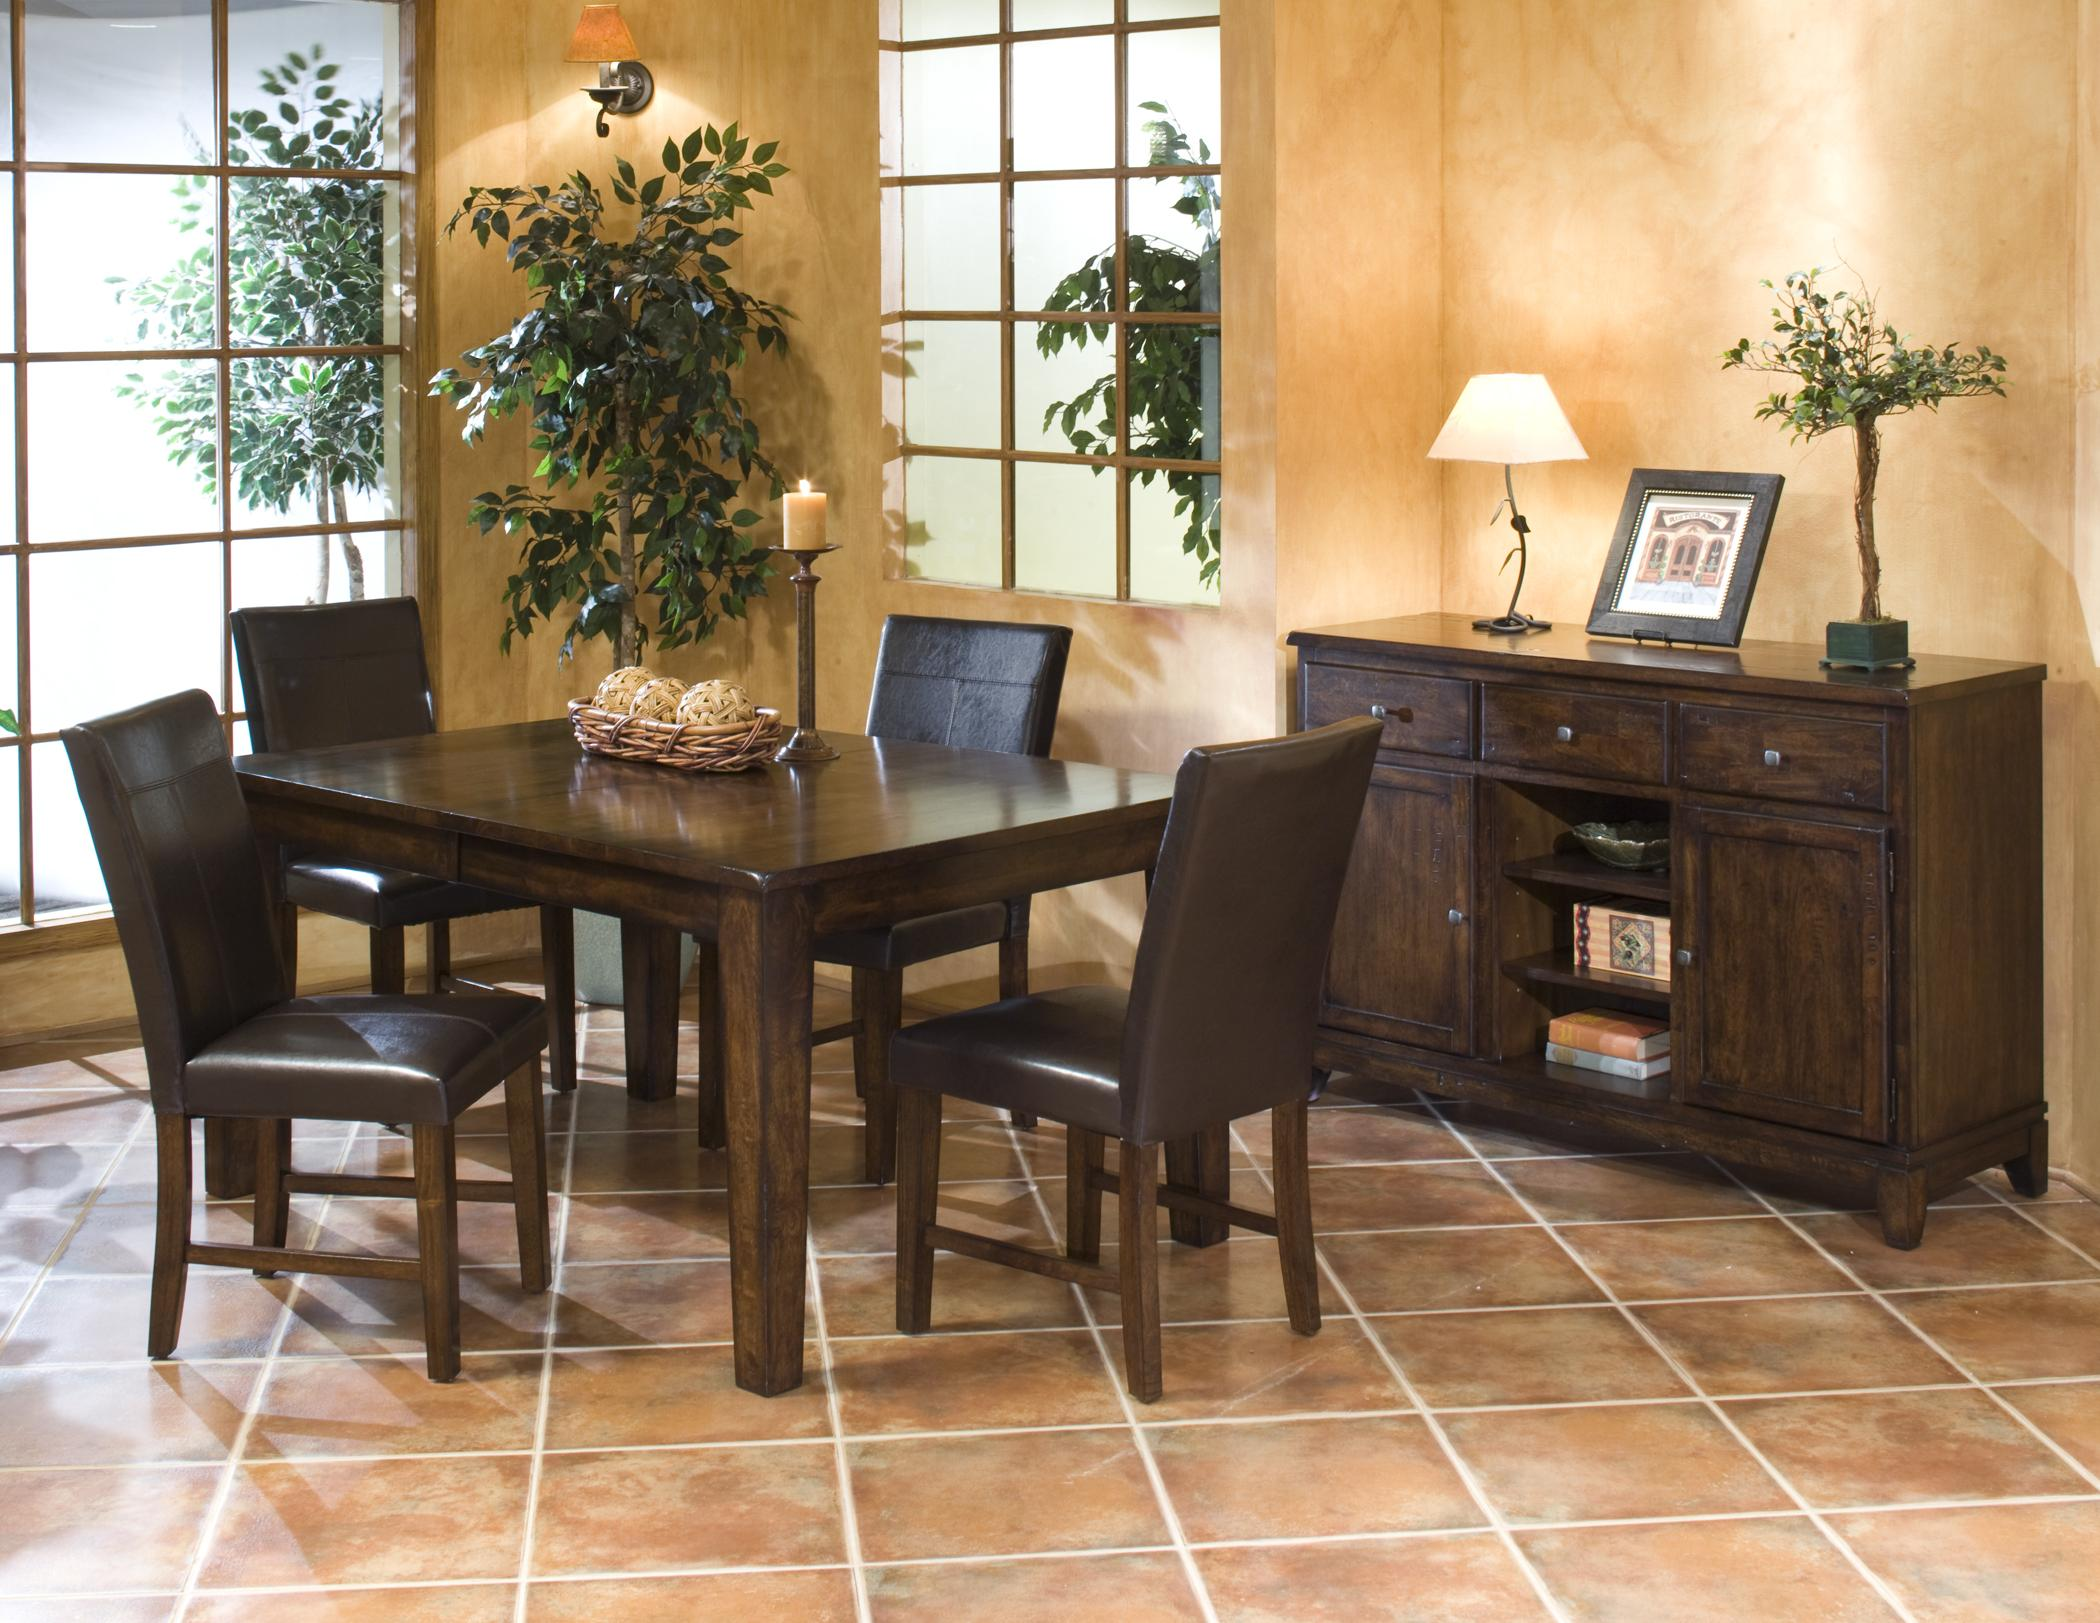 Belfort Select Cabin Creek Dining Room Serving Table. Cake Decorating Classes Near Me. Room Painting Apps. Room Organizers. Curtains For Living Room Window. Large Halloween Decorations. Entryway Decorating Ideas. Fancy Dining Room. Dragon Decorations